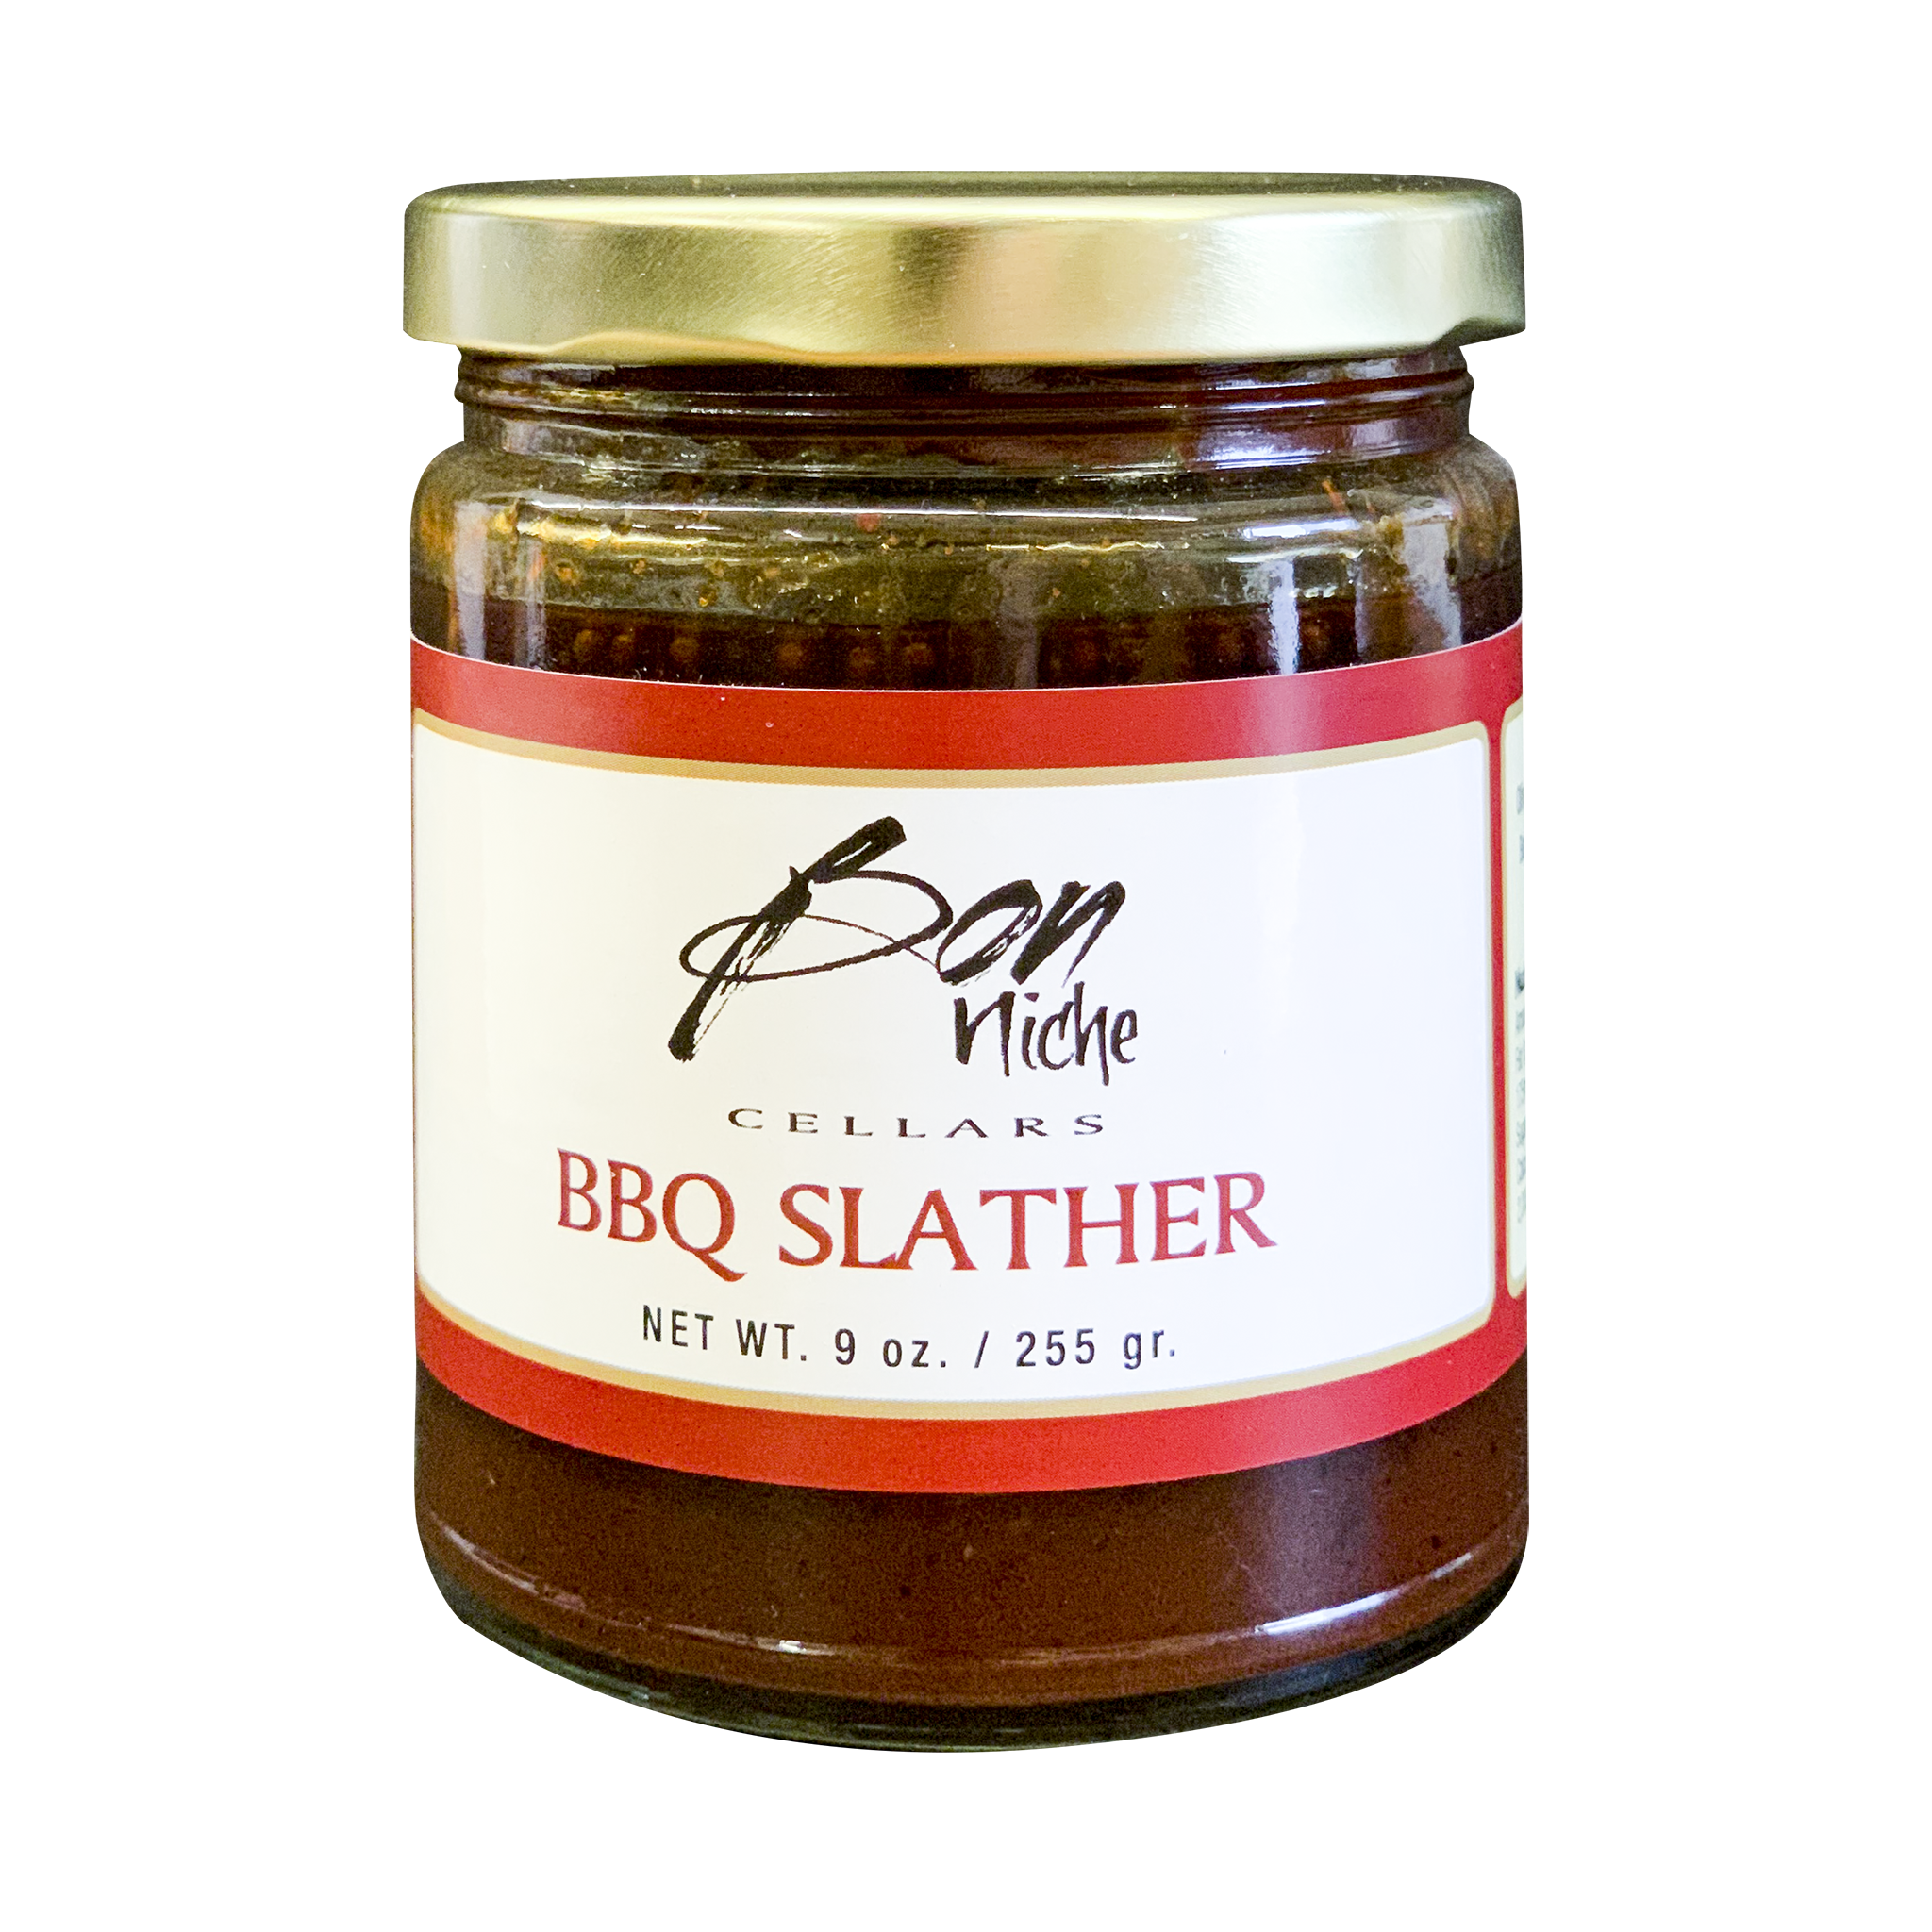 BBQ Slather bottle